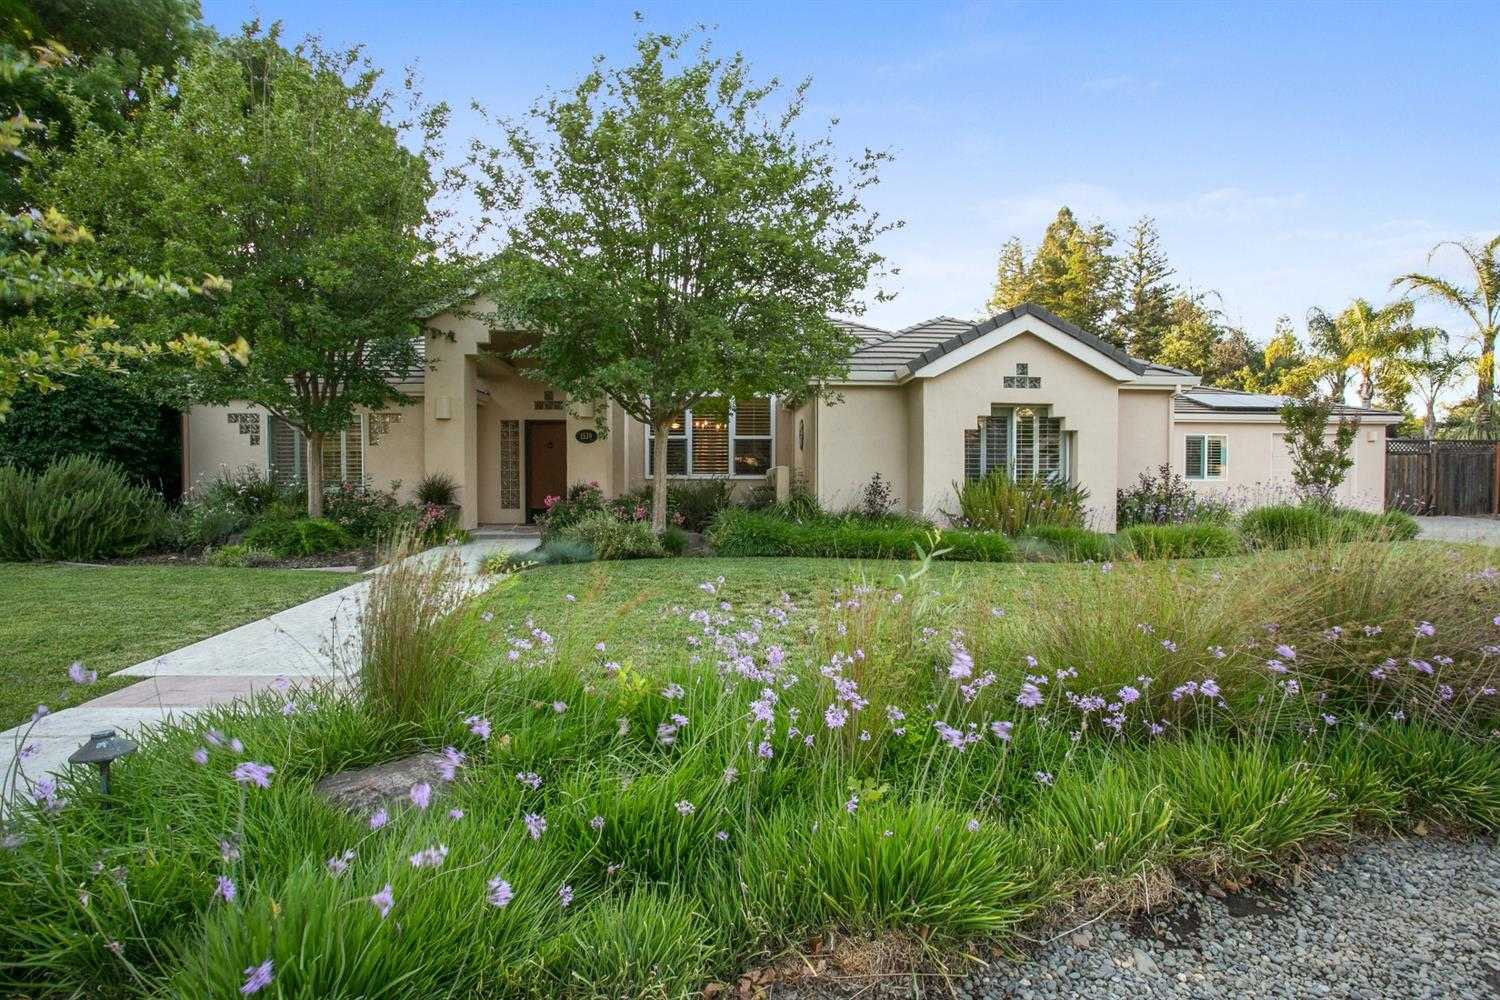 $1,225,000 - 5Br/4Ba -  for Sale in Oakshade, Davis